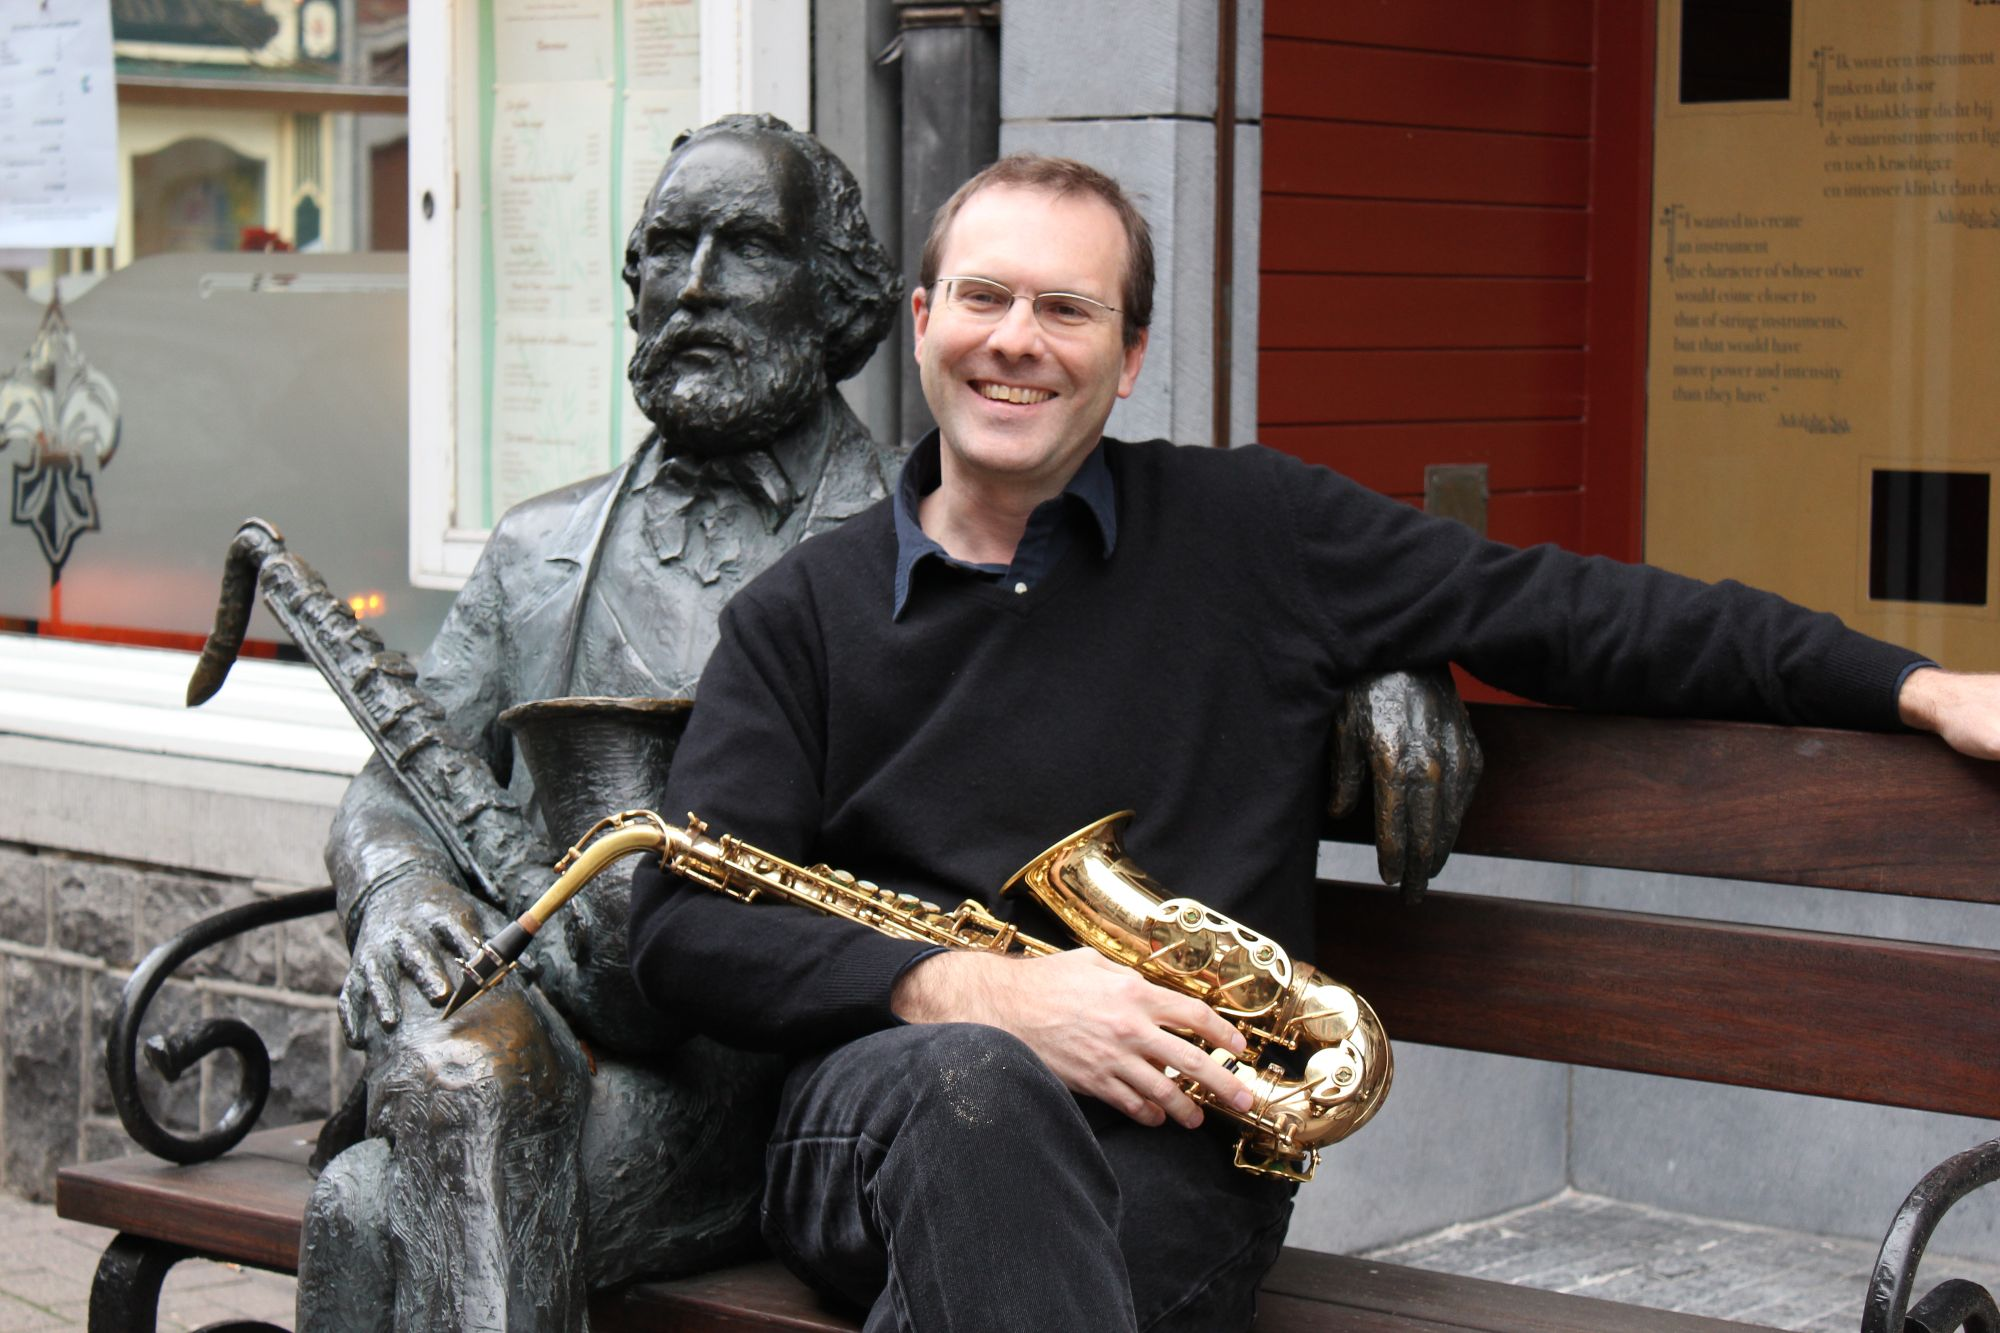 Kyle Horch photo with Adolphe Sax statue